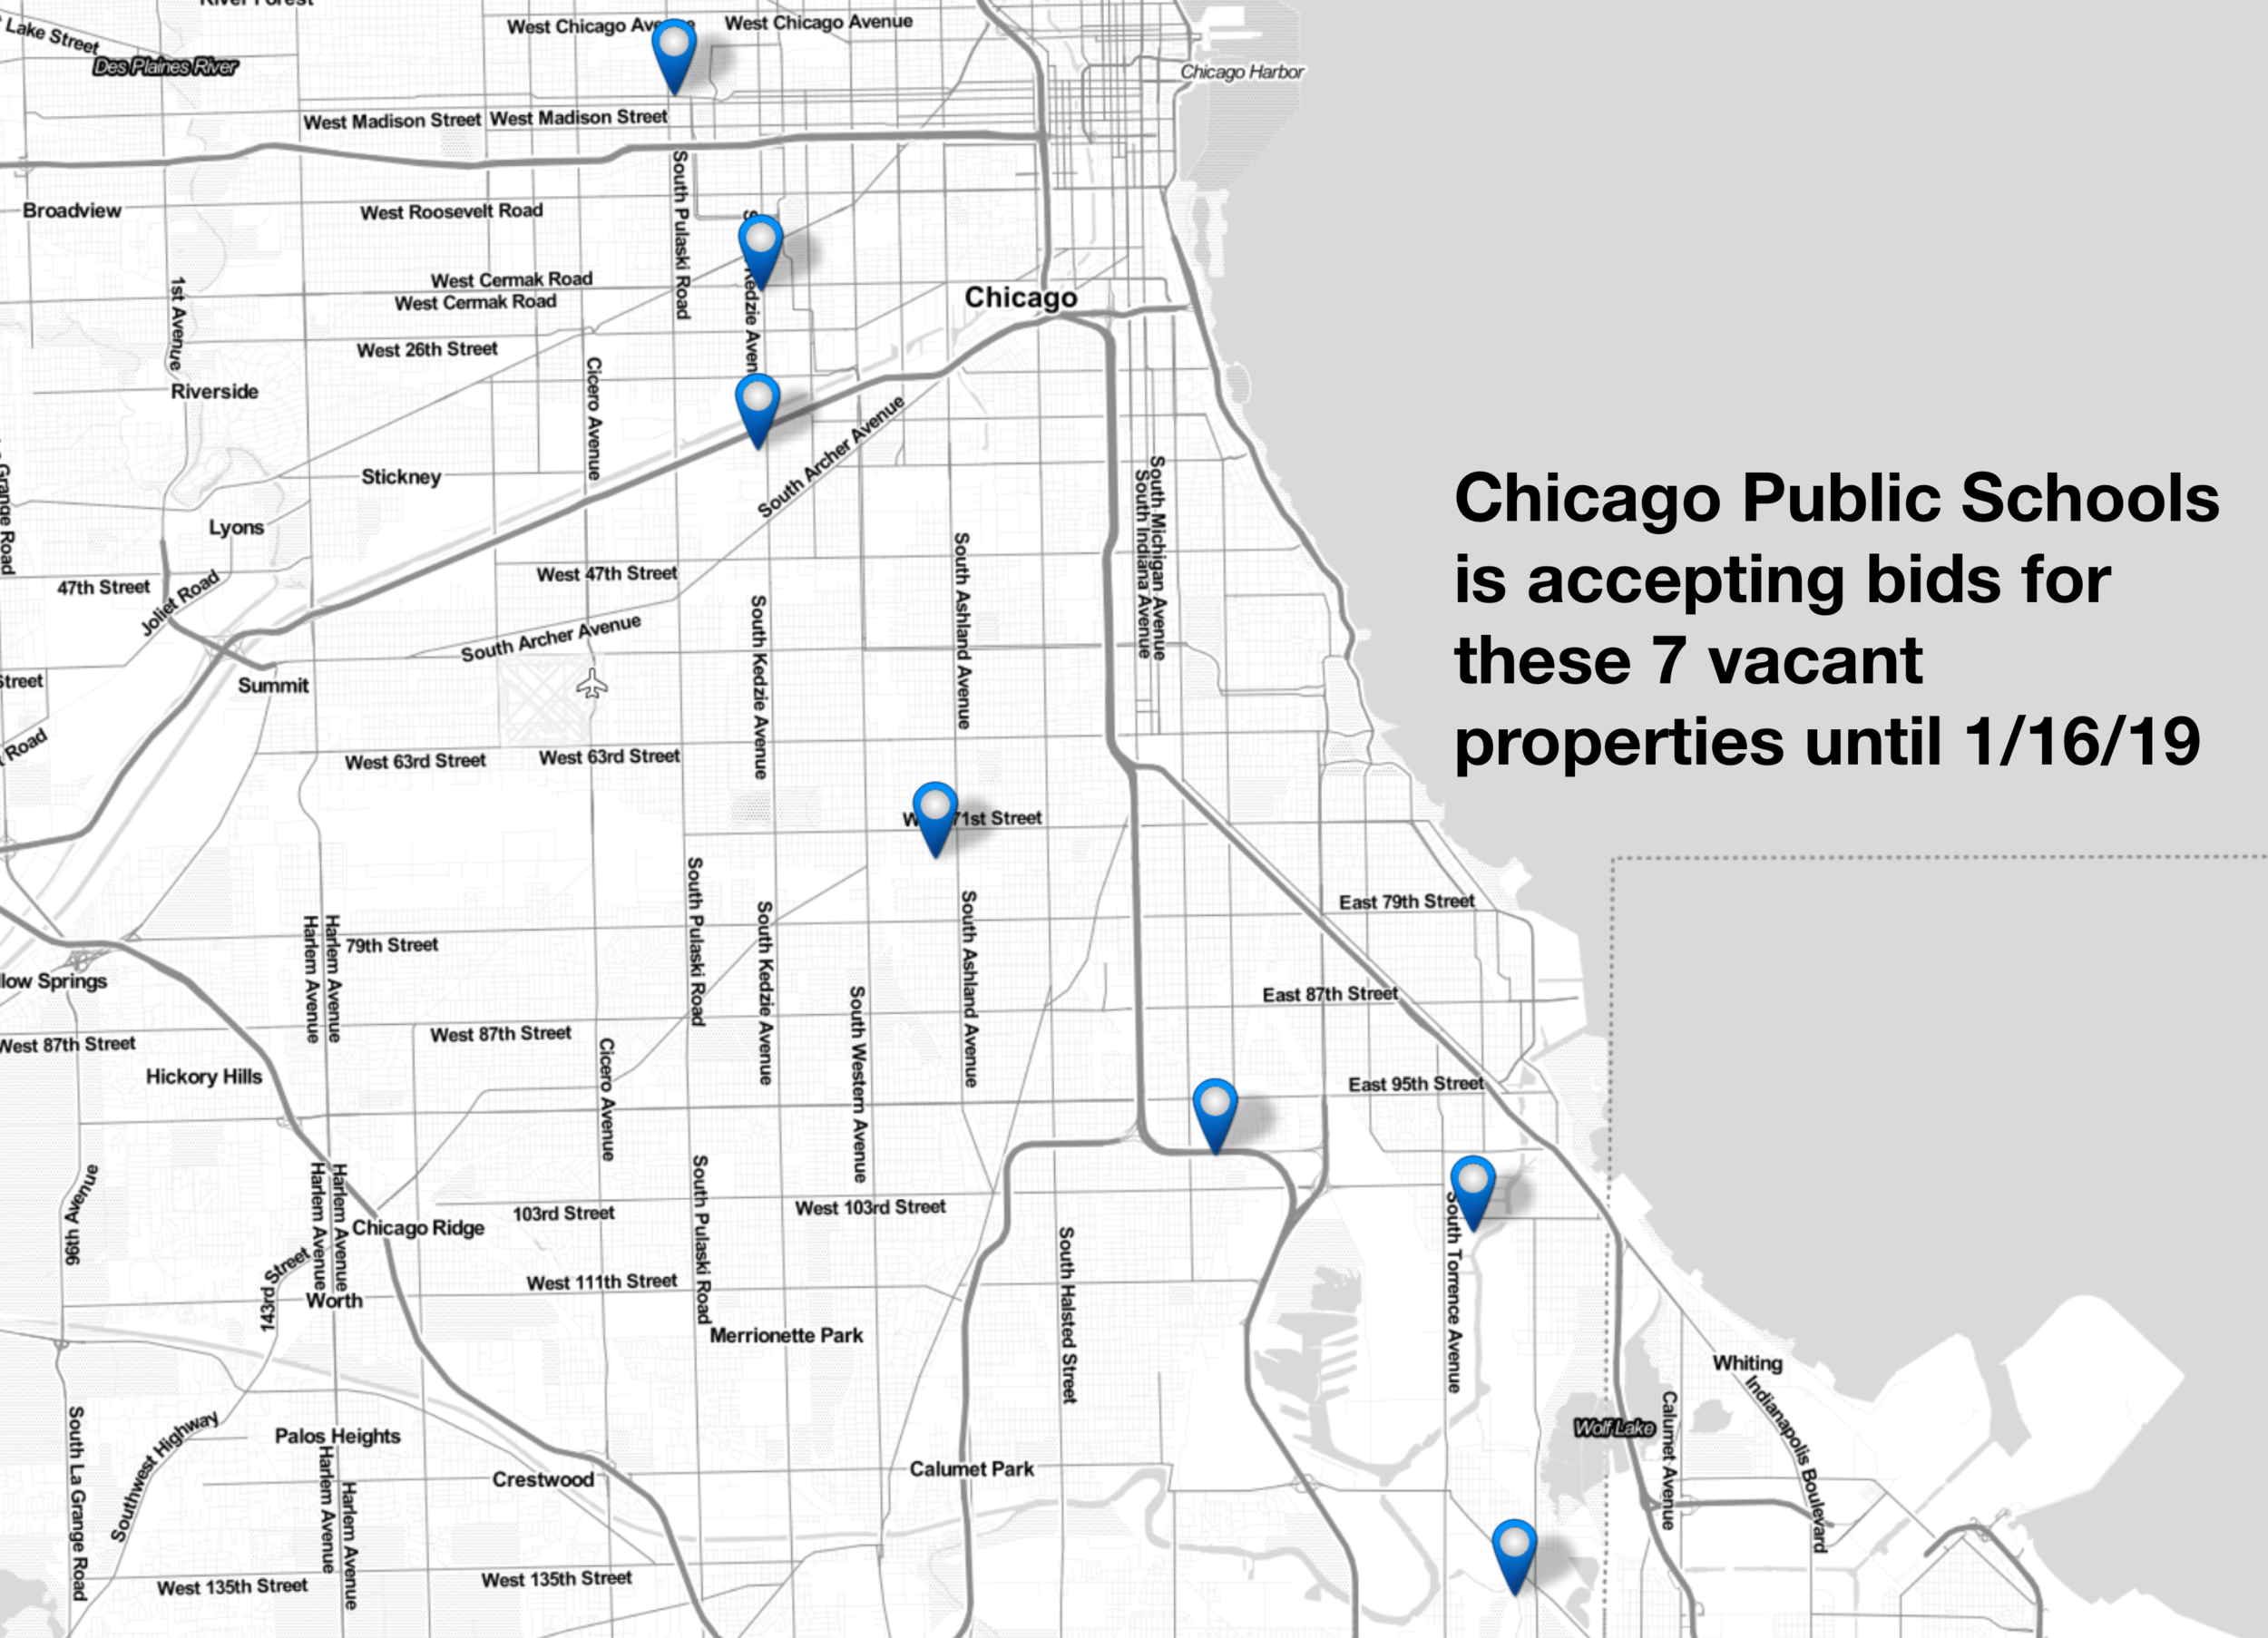 MAP Strategies - Understand zoning requirements before ... on chicago budget, chicago and surrounding suburbs maps, chicago street index, chicago arcology map, chicago attraction map interactive click, chicago construction map, chicago submarket map, denver rtd light rail route map, chicago watershed map, chicago zones, chicago topography map, chicago residential parking permit, chicago zip code map printable, chicago metra system map, chicago cemetery map, chicago permit parking map, chicago municipal code, chicago temperature map, a long way from chicago map, chicago annexation map,